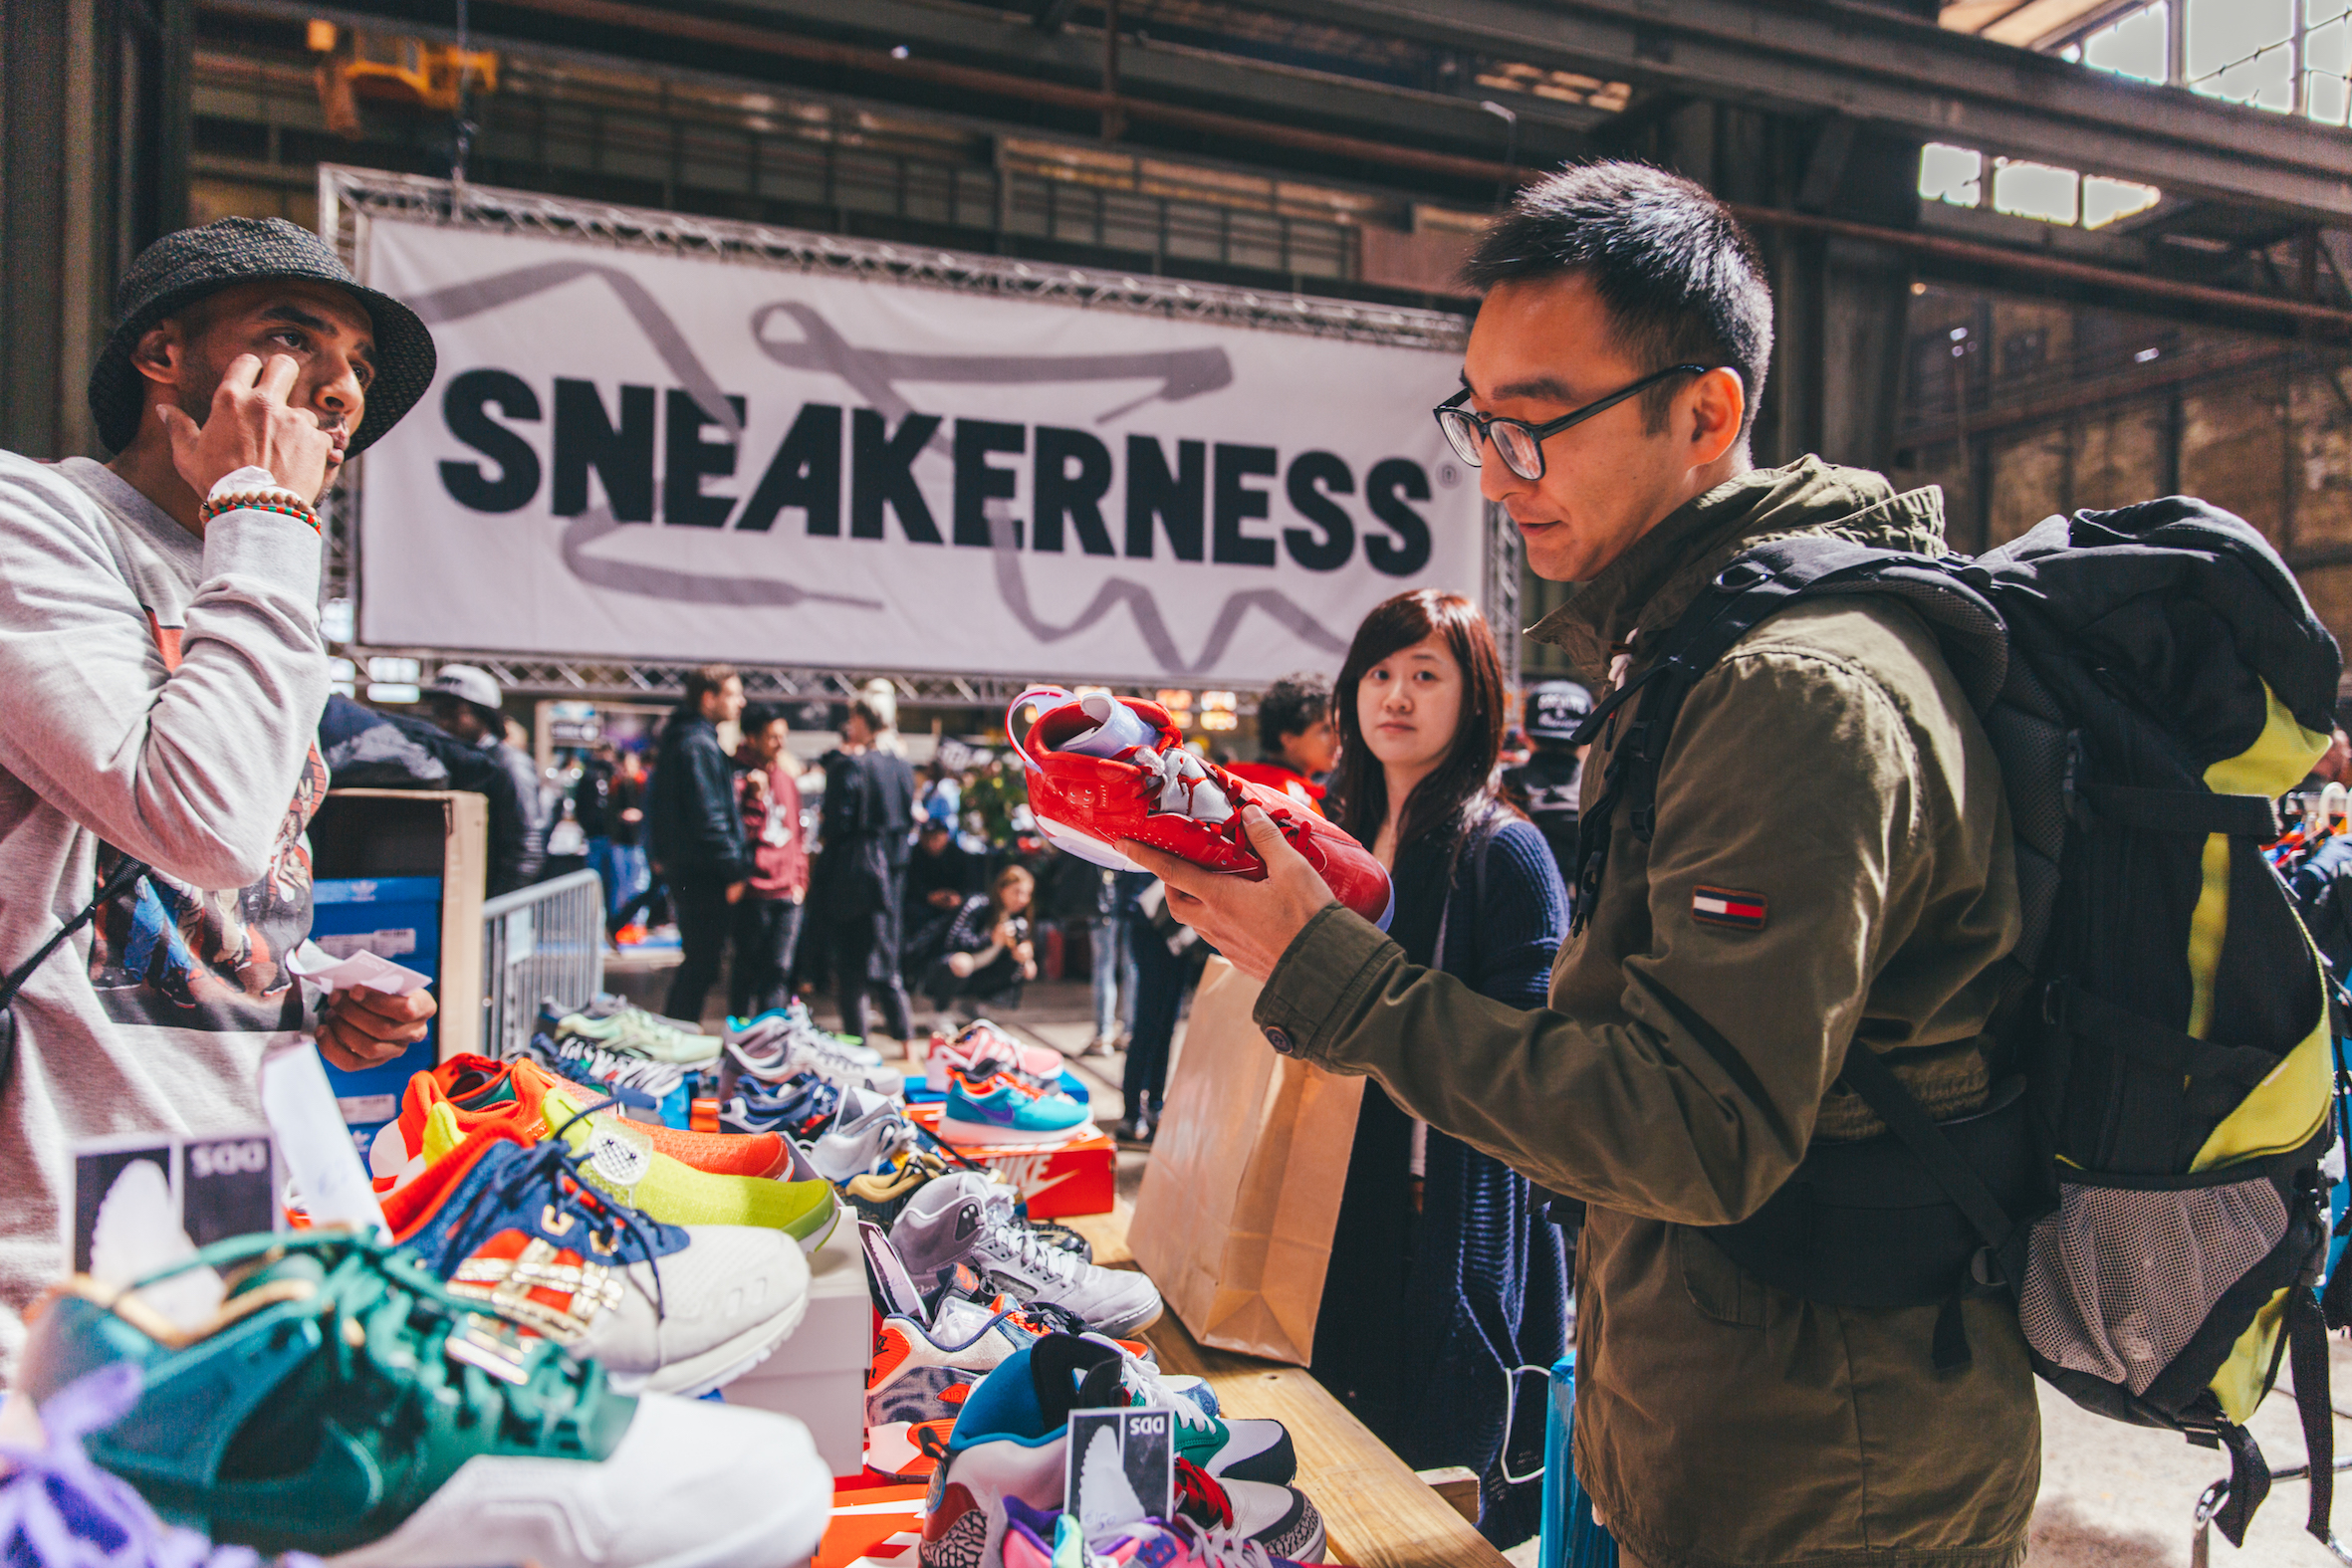 sneakerness_amsterdam_2015-6